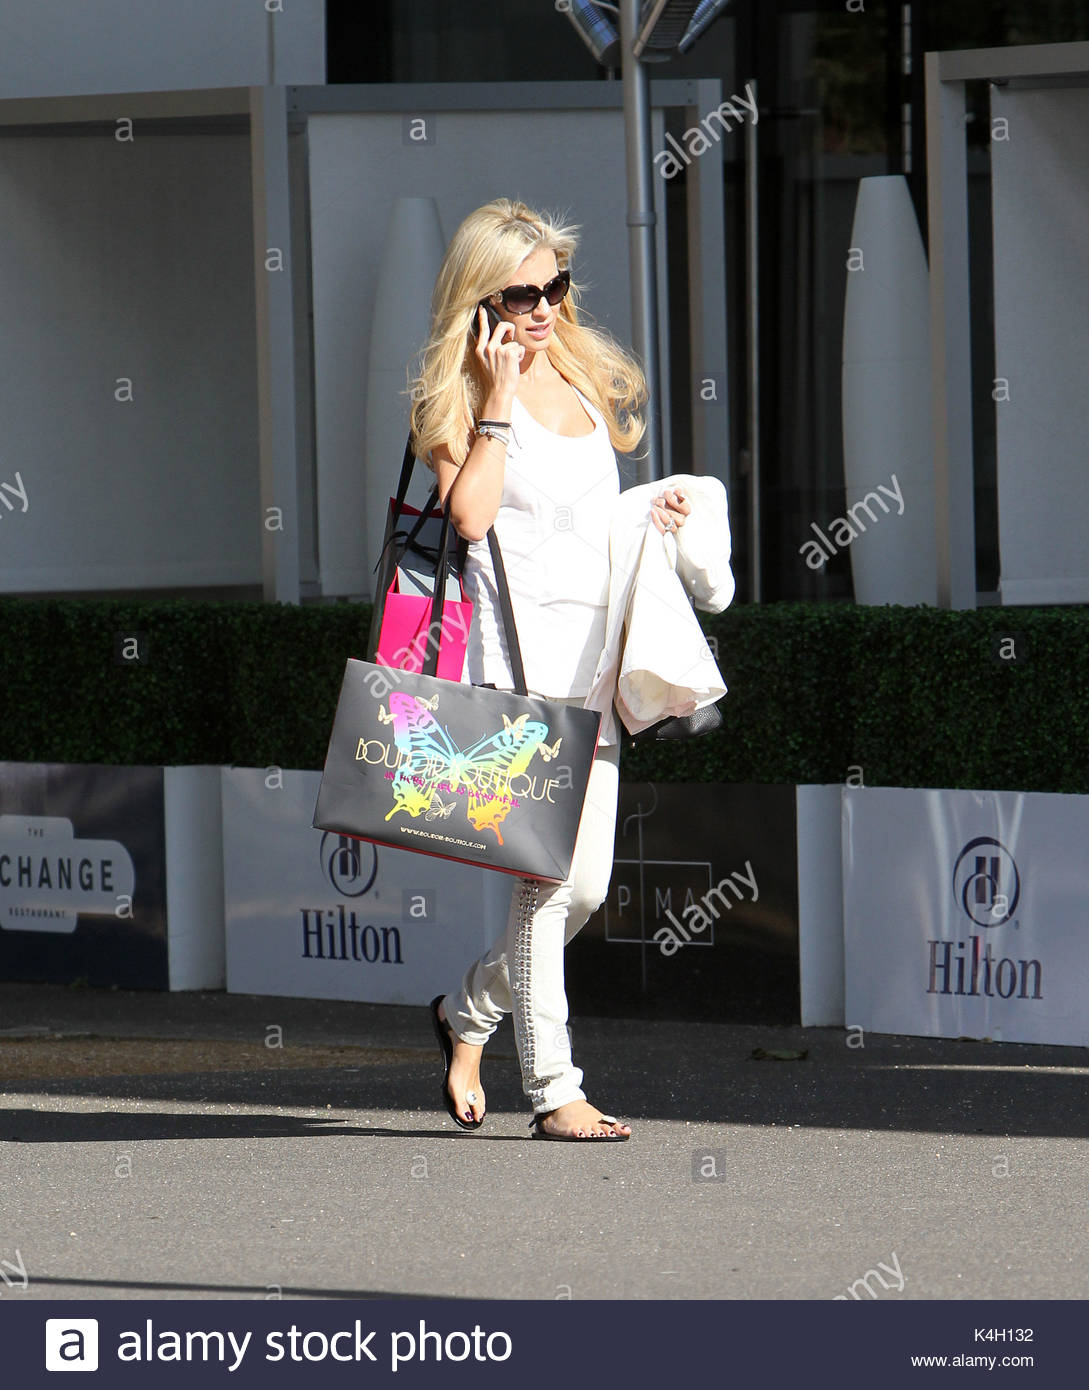 Claudine Keane. Irish WAG Claudine Keane spotted in Liverpool after a  shopping spree at her favourite fashion boutique 694cc305bb0